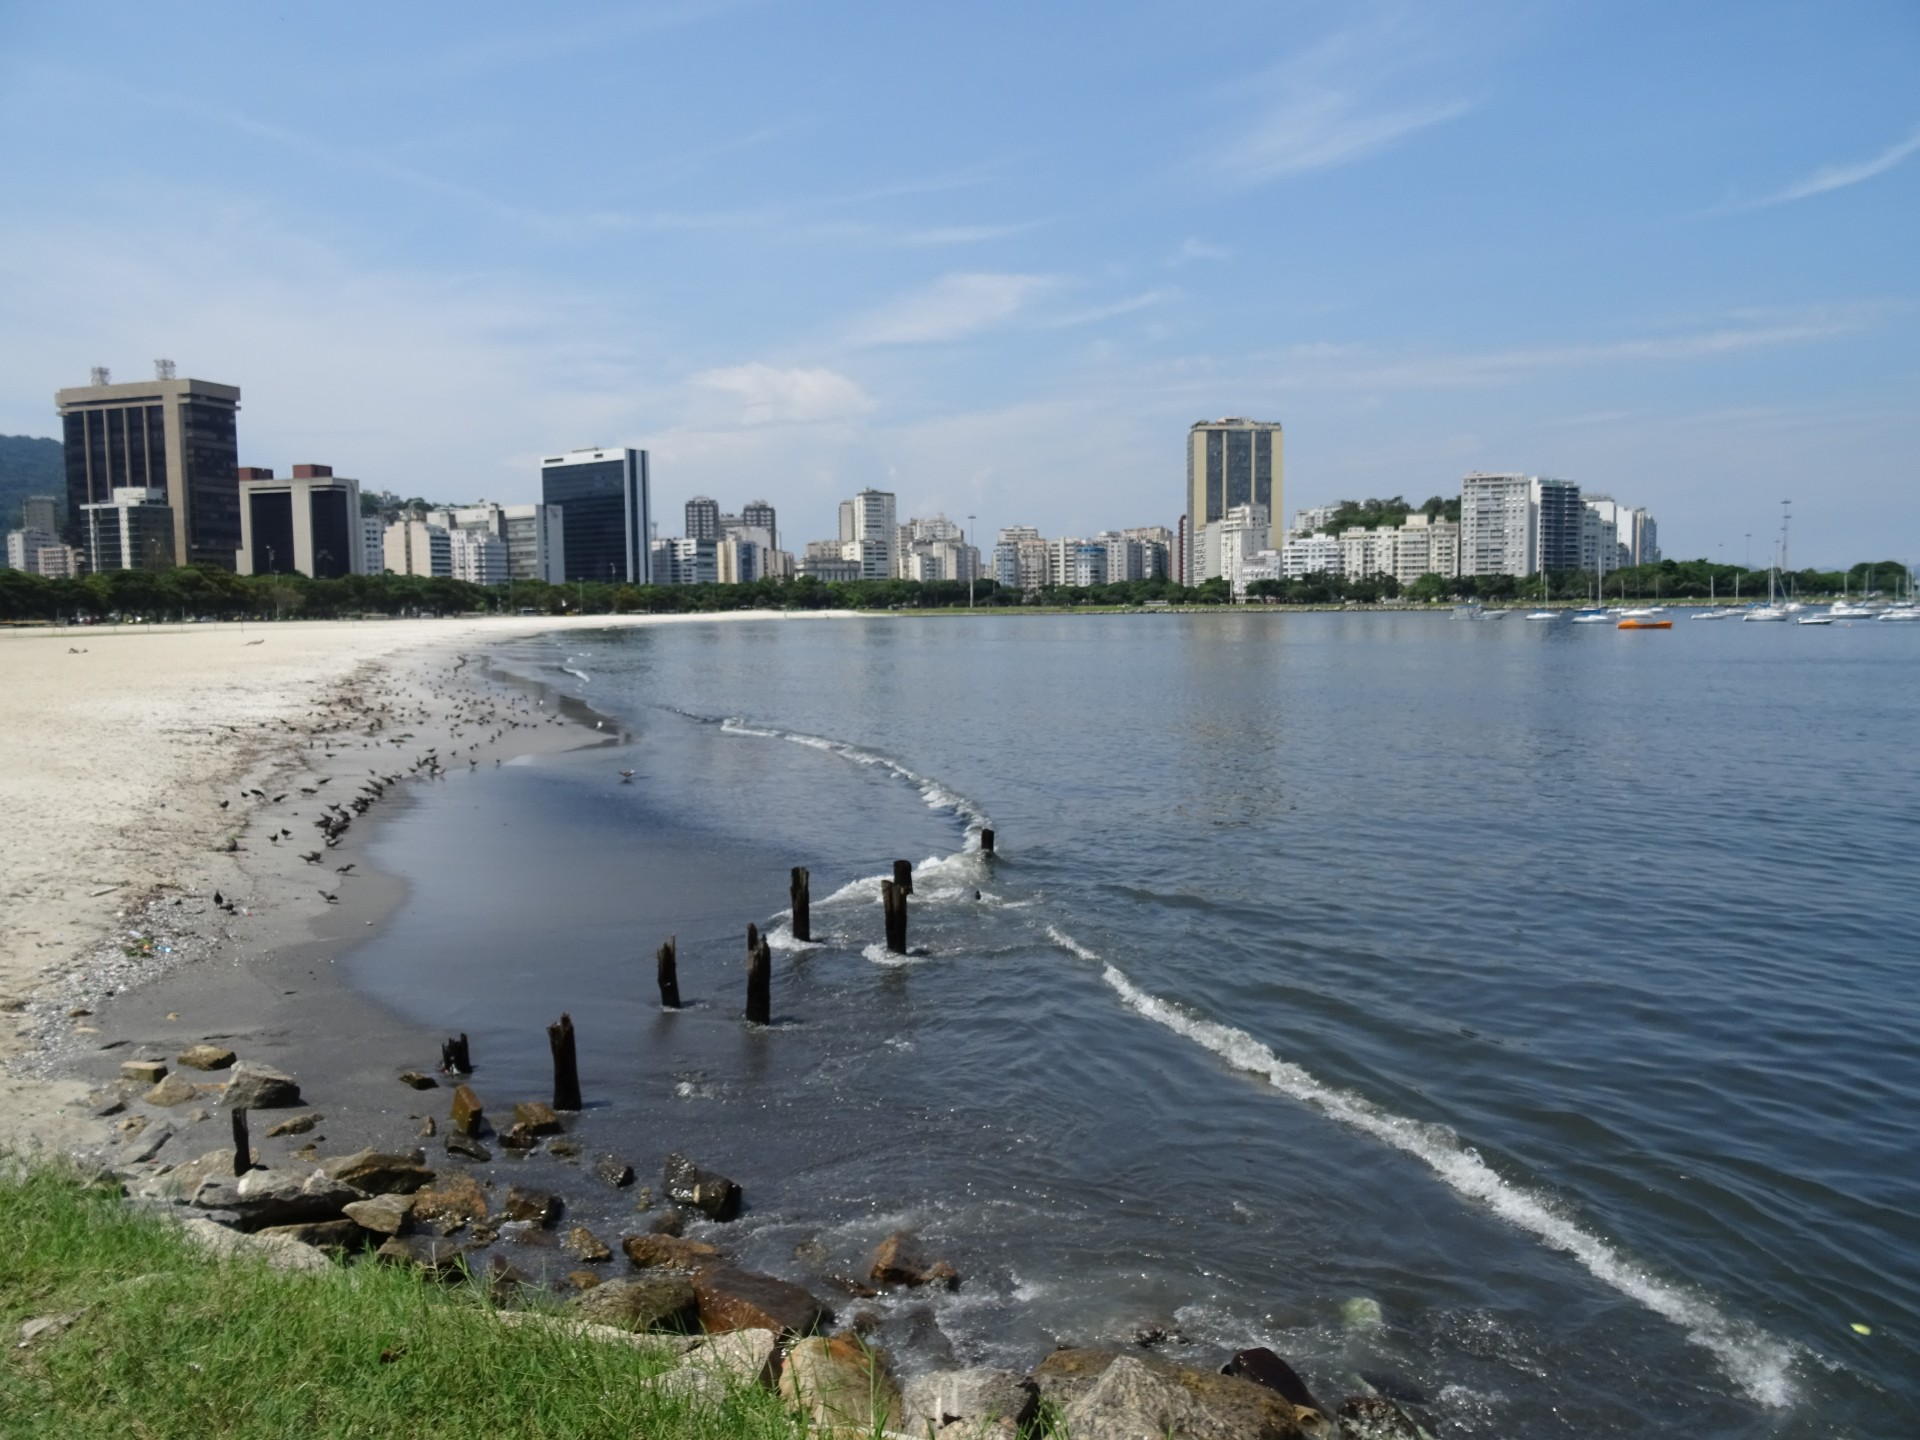 The beach in Botafogo.